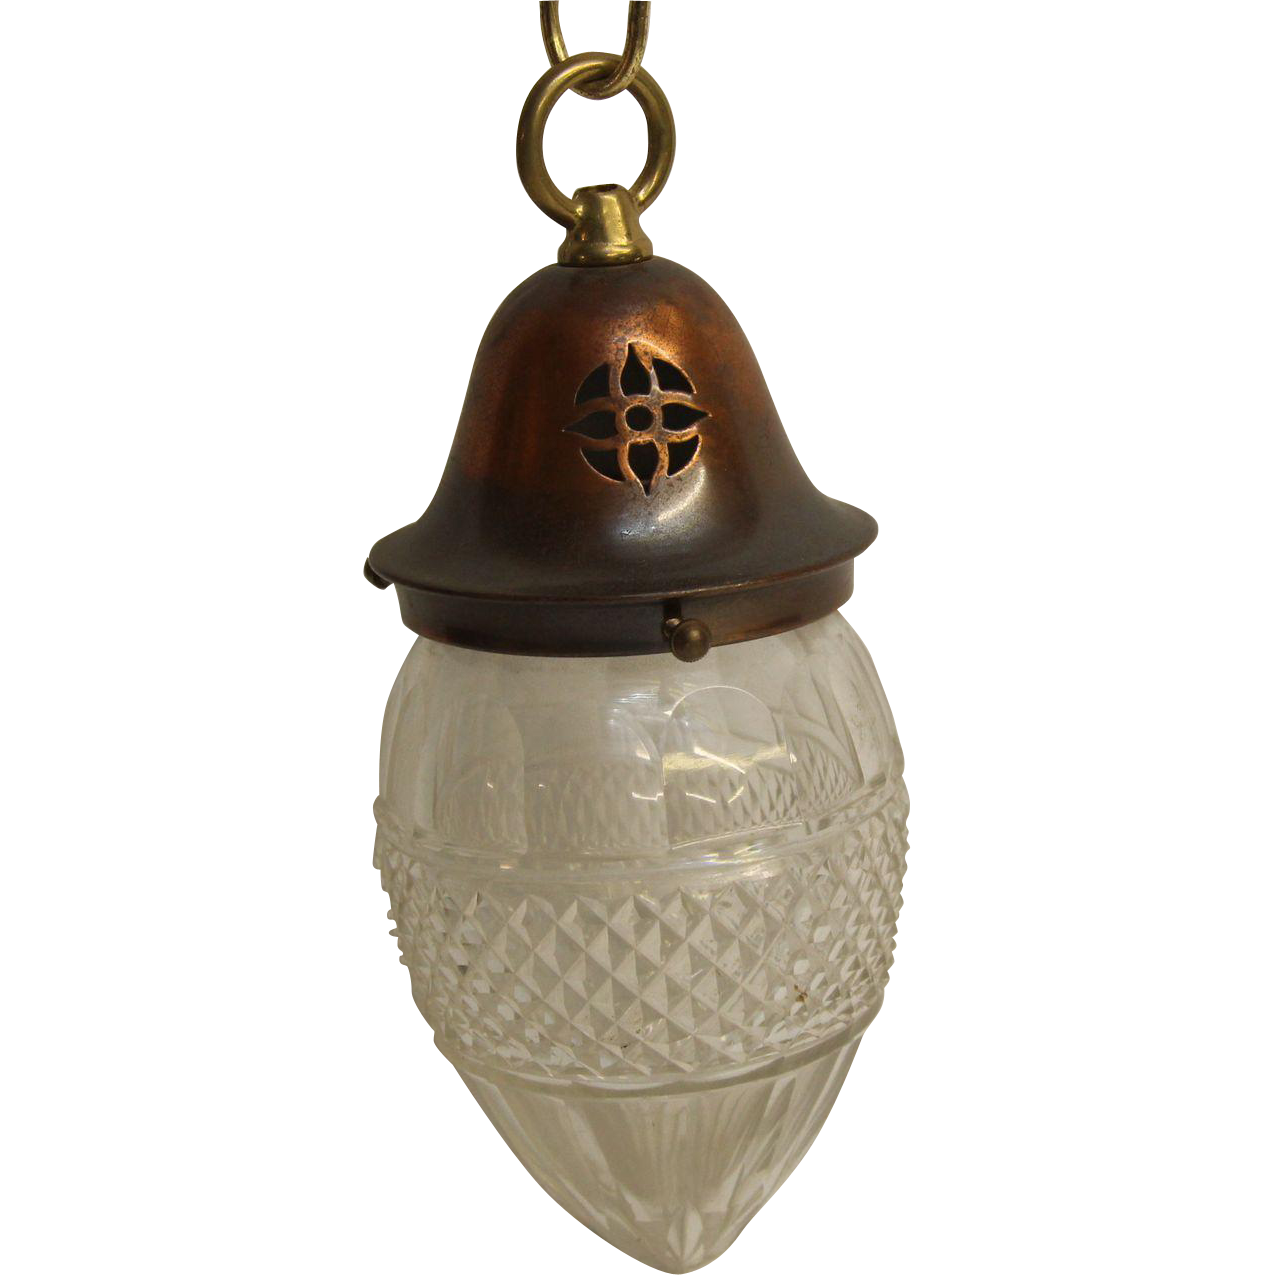 Cut glass egg shaped pendant light with copper fitter